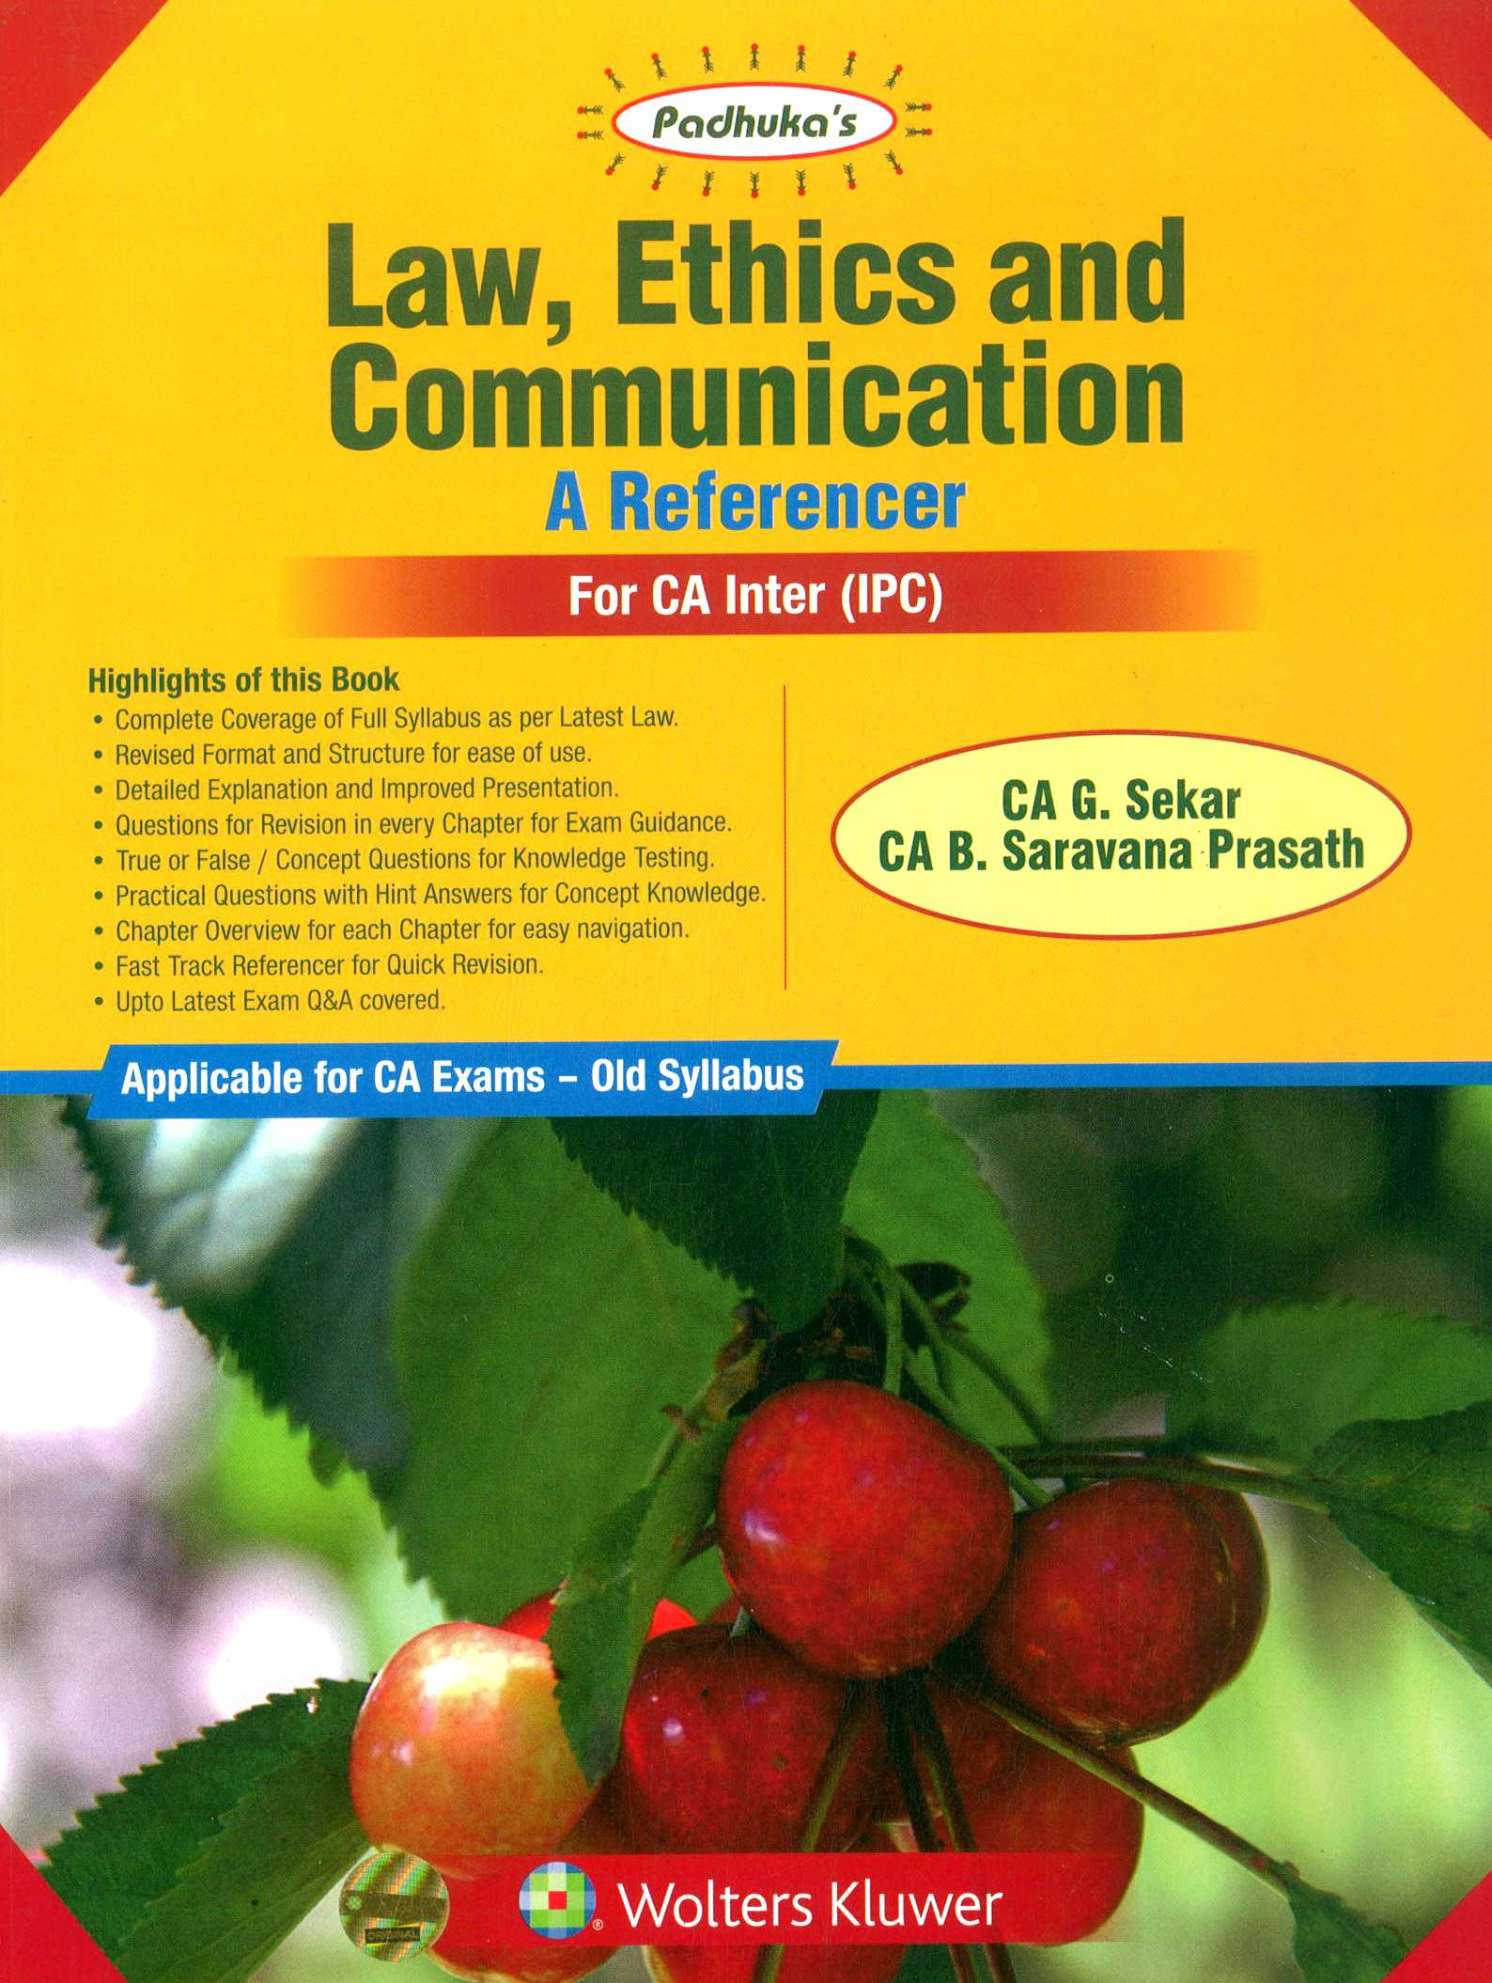 Padhuka's Law, Ethics and Communication A Reference for CA IPCC by CA G. Sekar and CA B. Saravana Prasath (Wolters Kluwer Publication) for May 2020 Exam